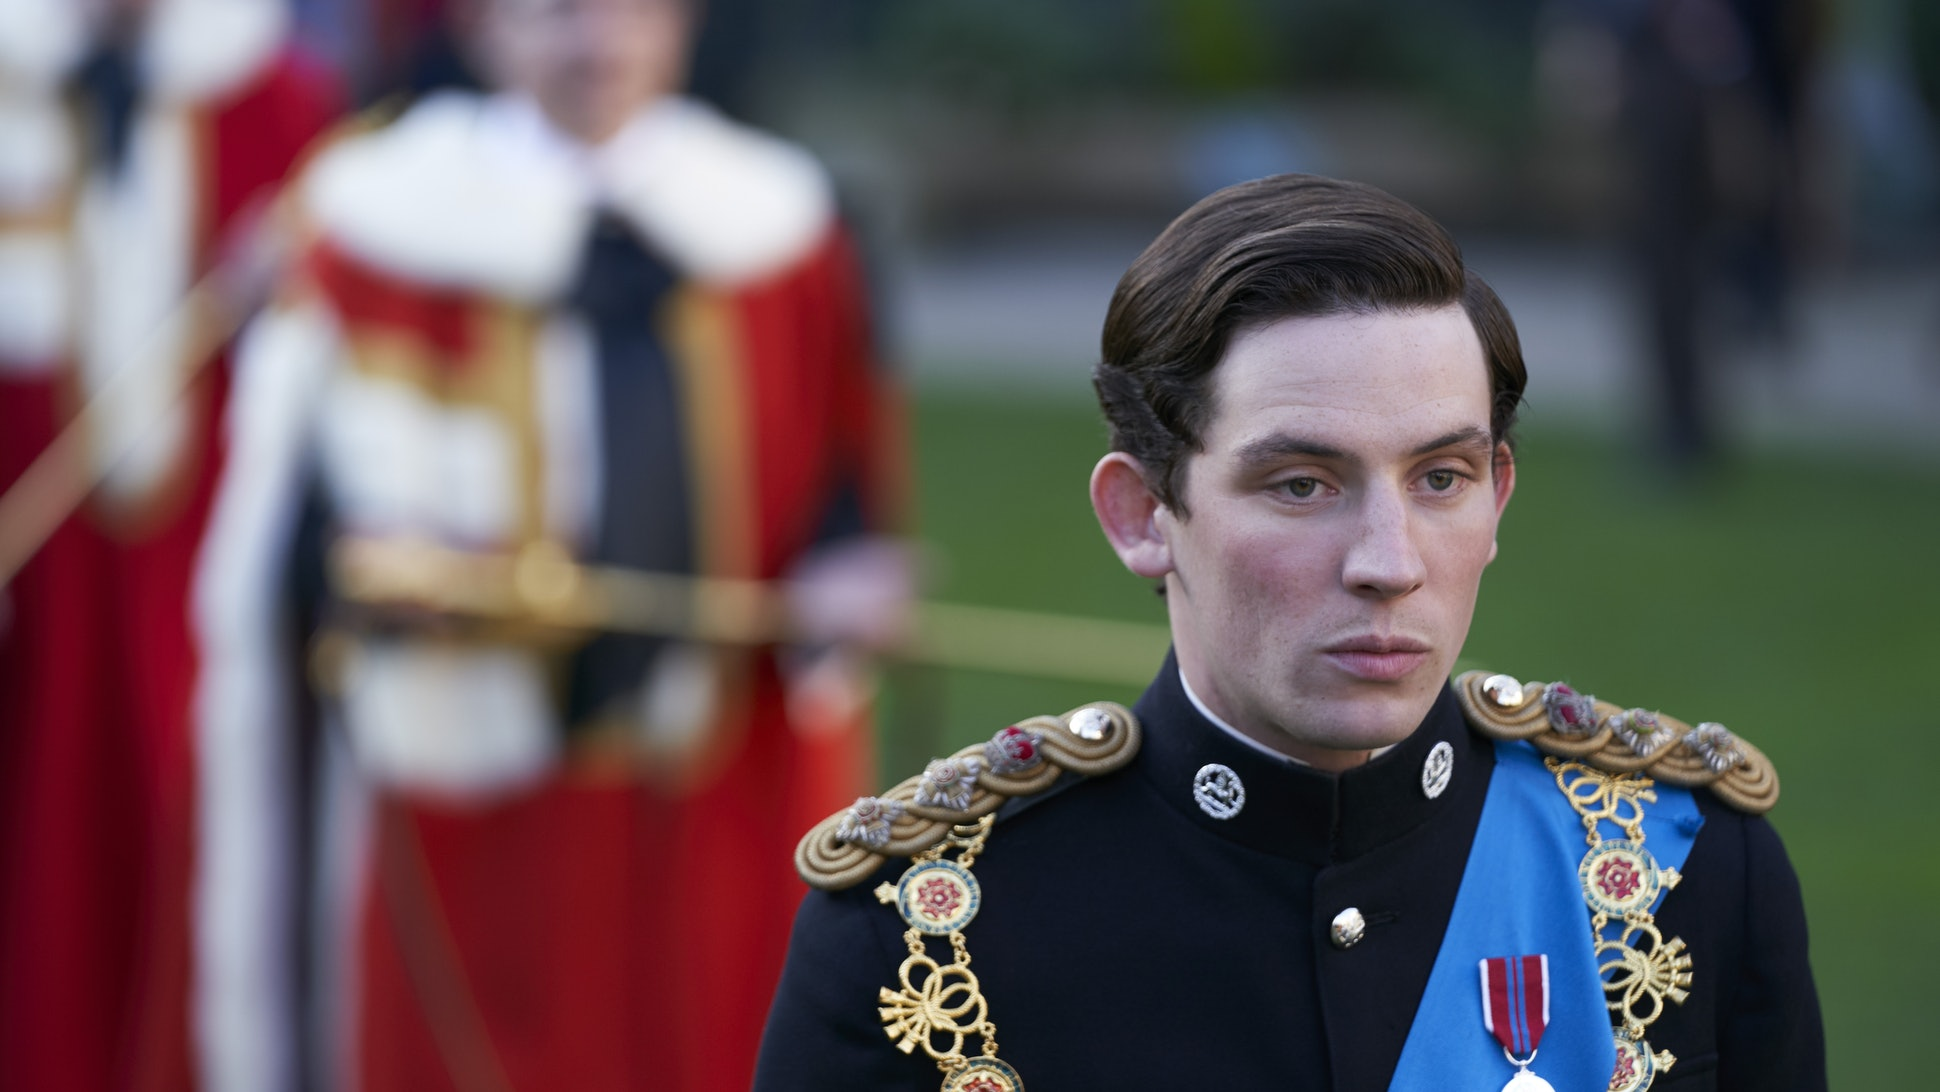 Josh O'Connor on 'Lost Soul' Prince Charles in 'The Crown' | IndieWire